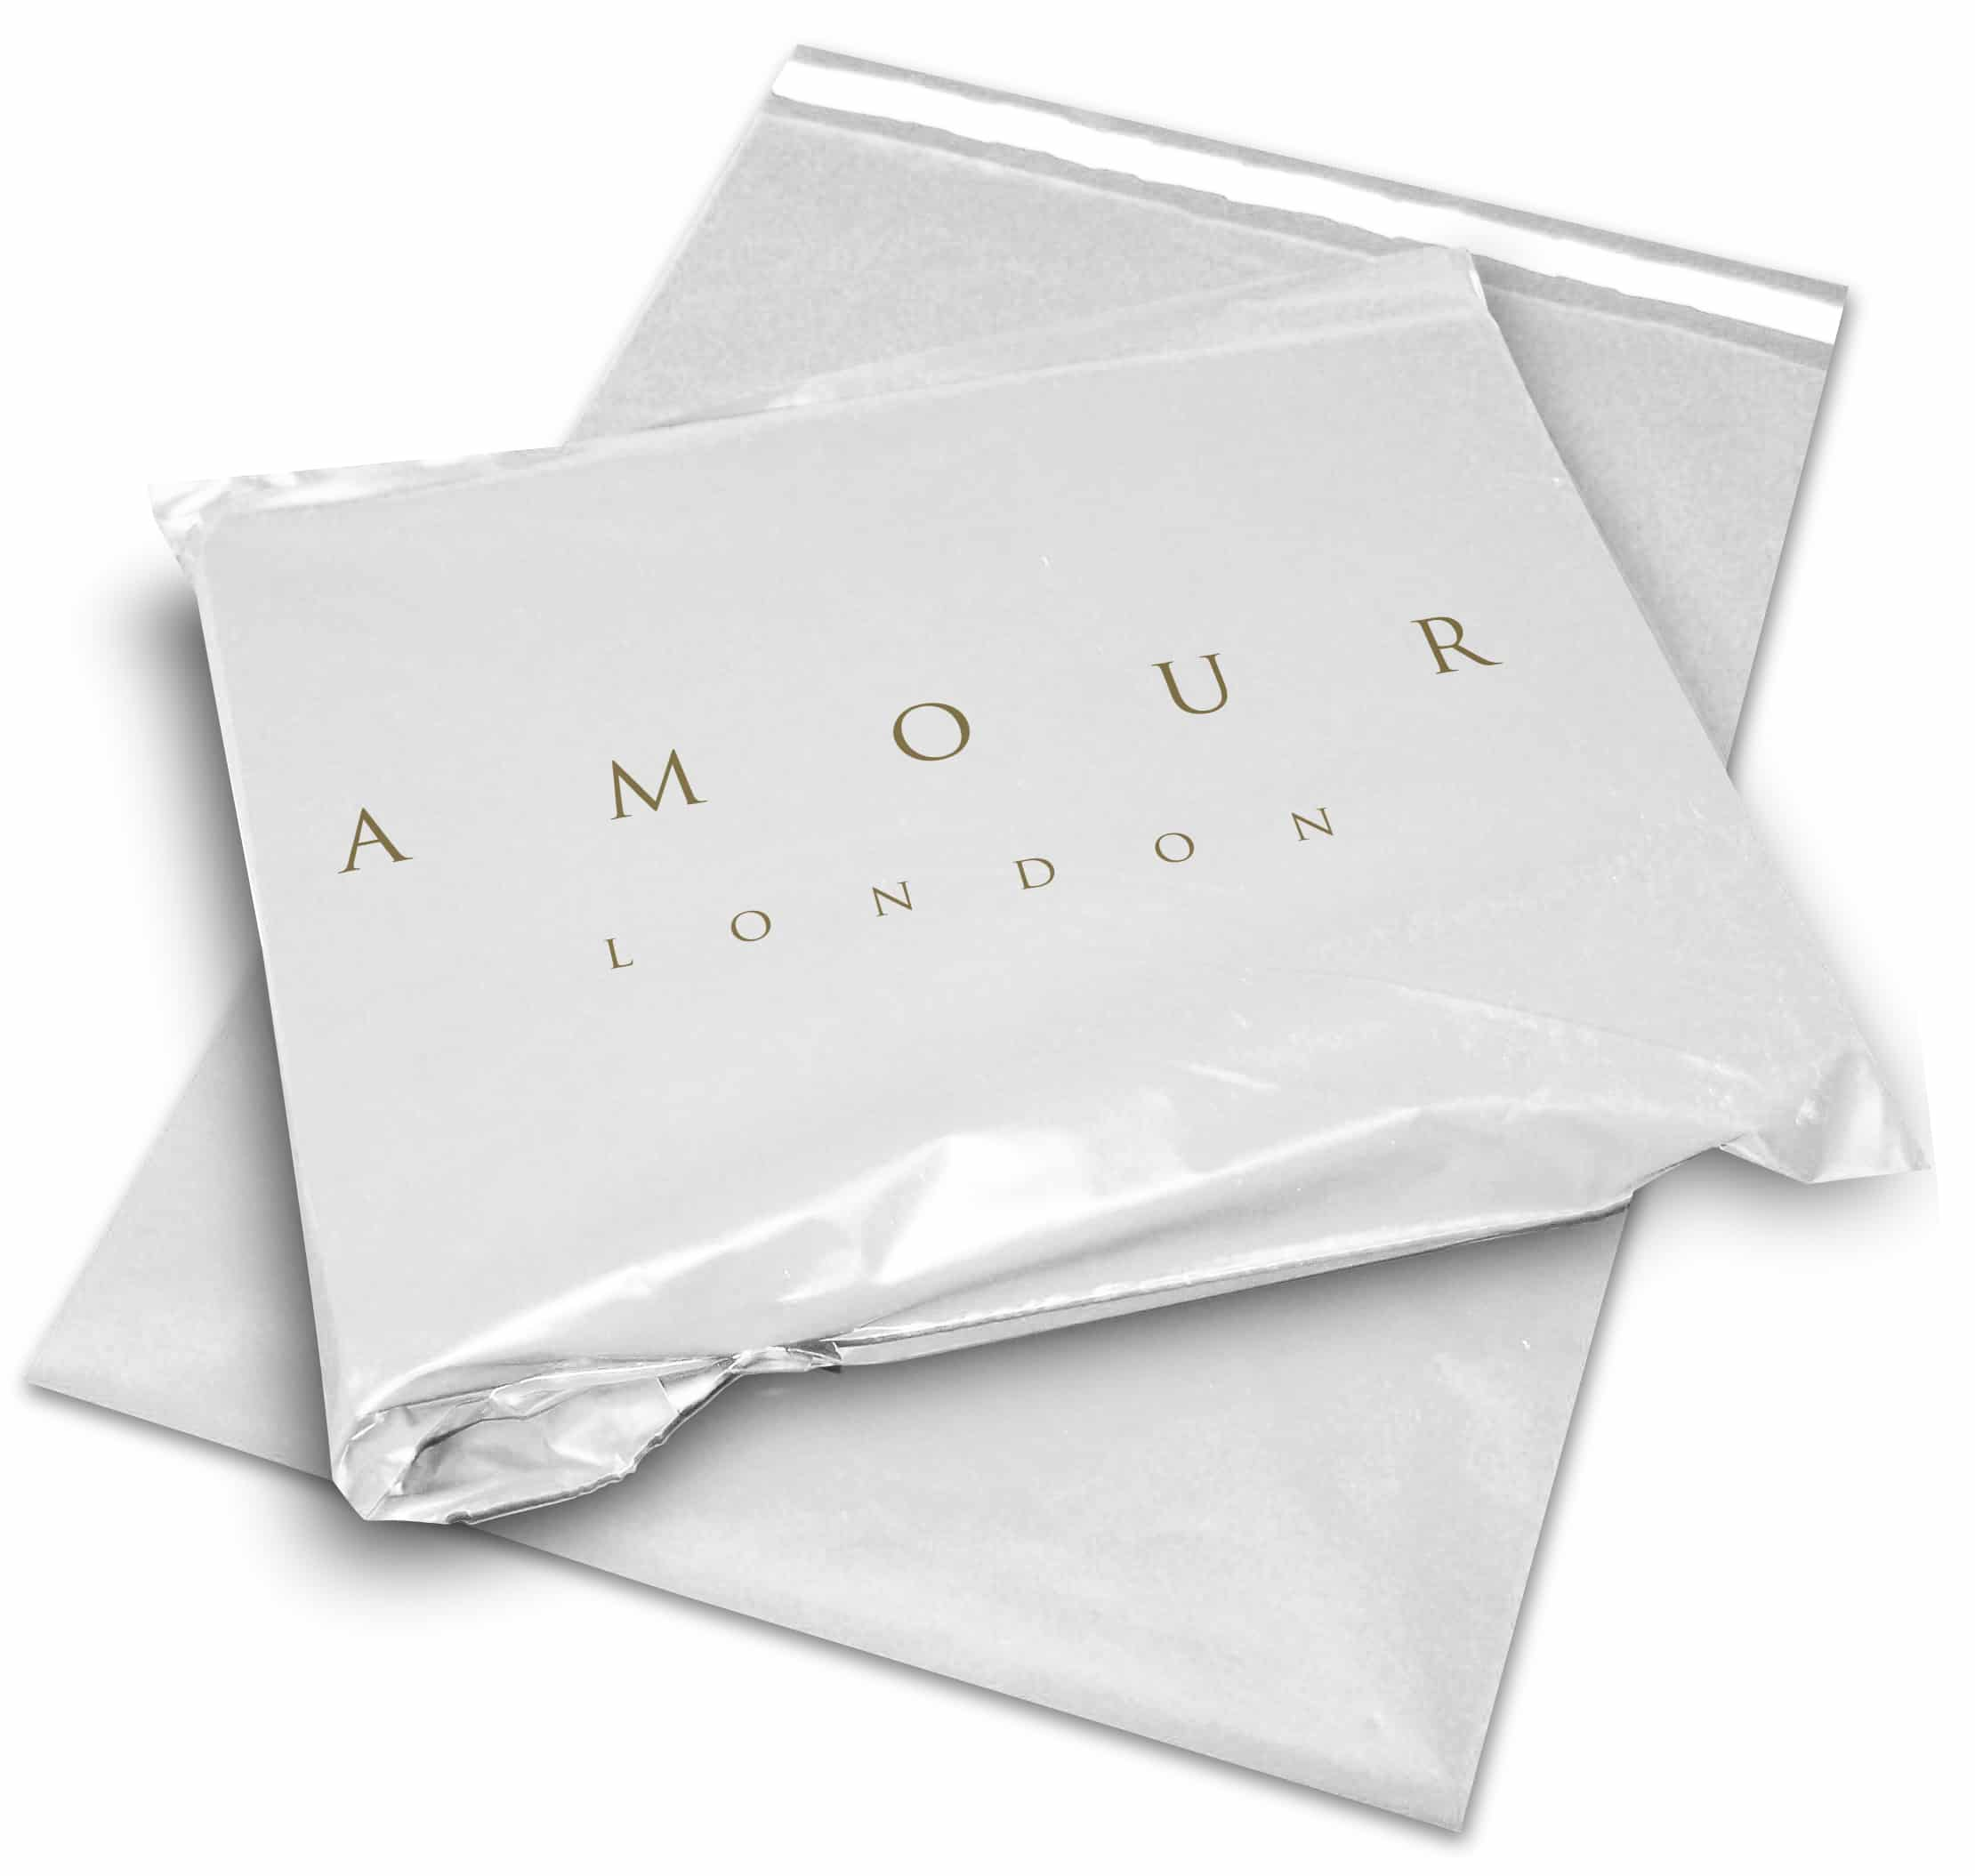 AmourLondon_MailBag